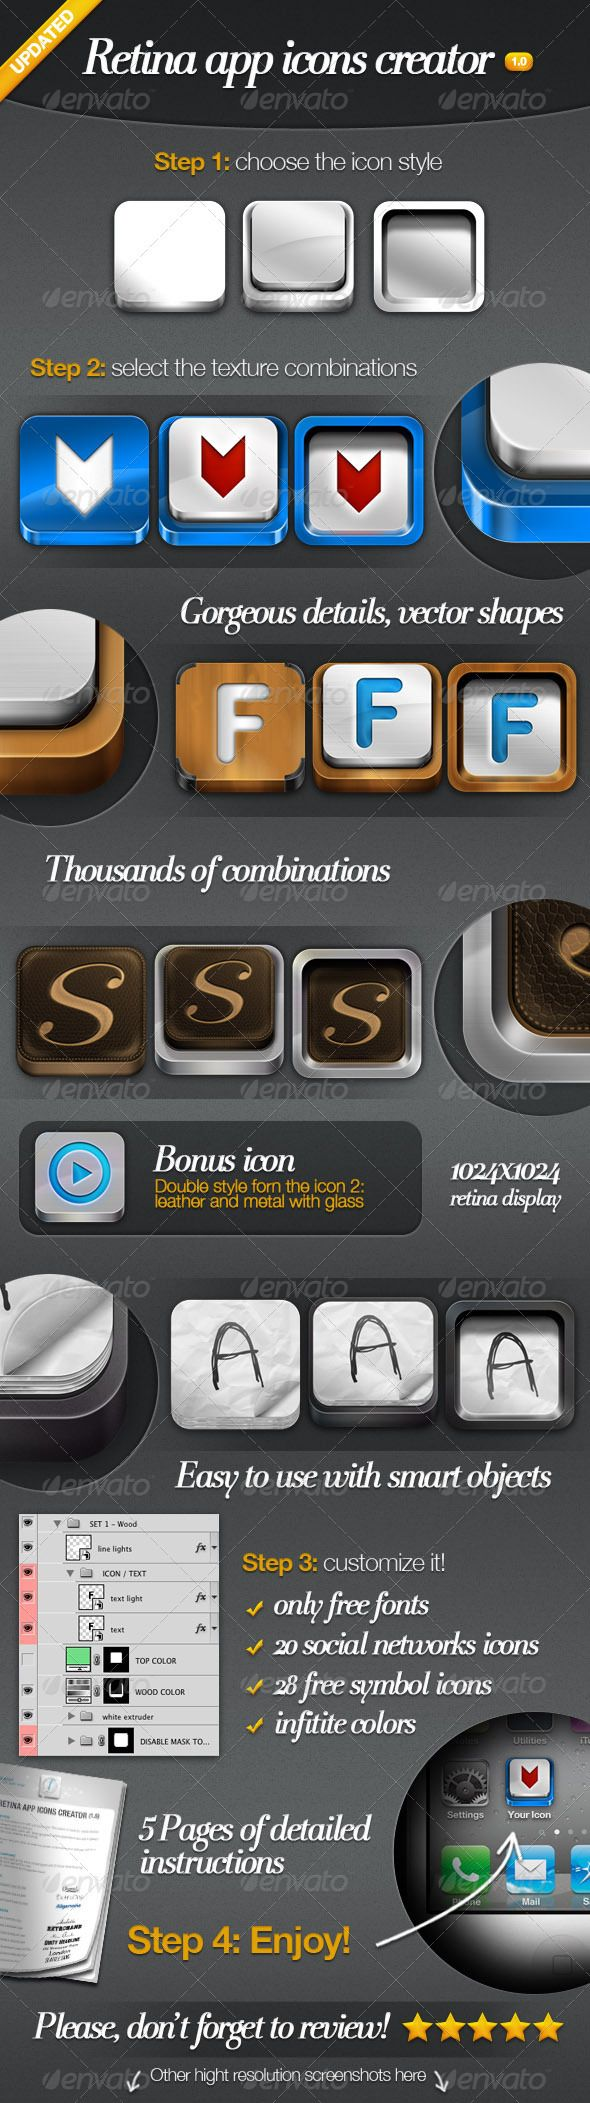 100+ Beautiful iOS Icon Maker and iOS Icon Maker and Free iOS App Icon Templates